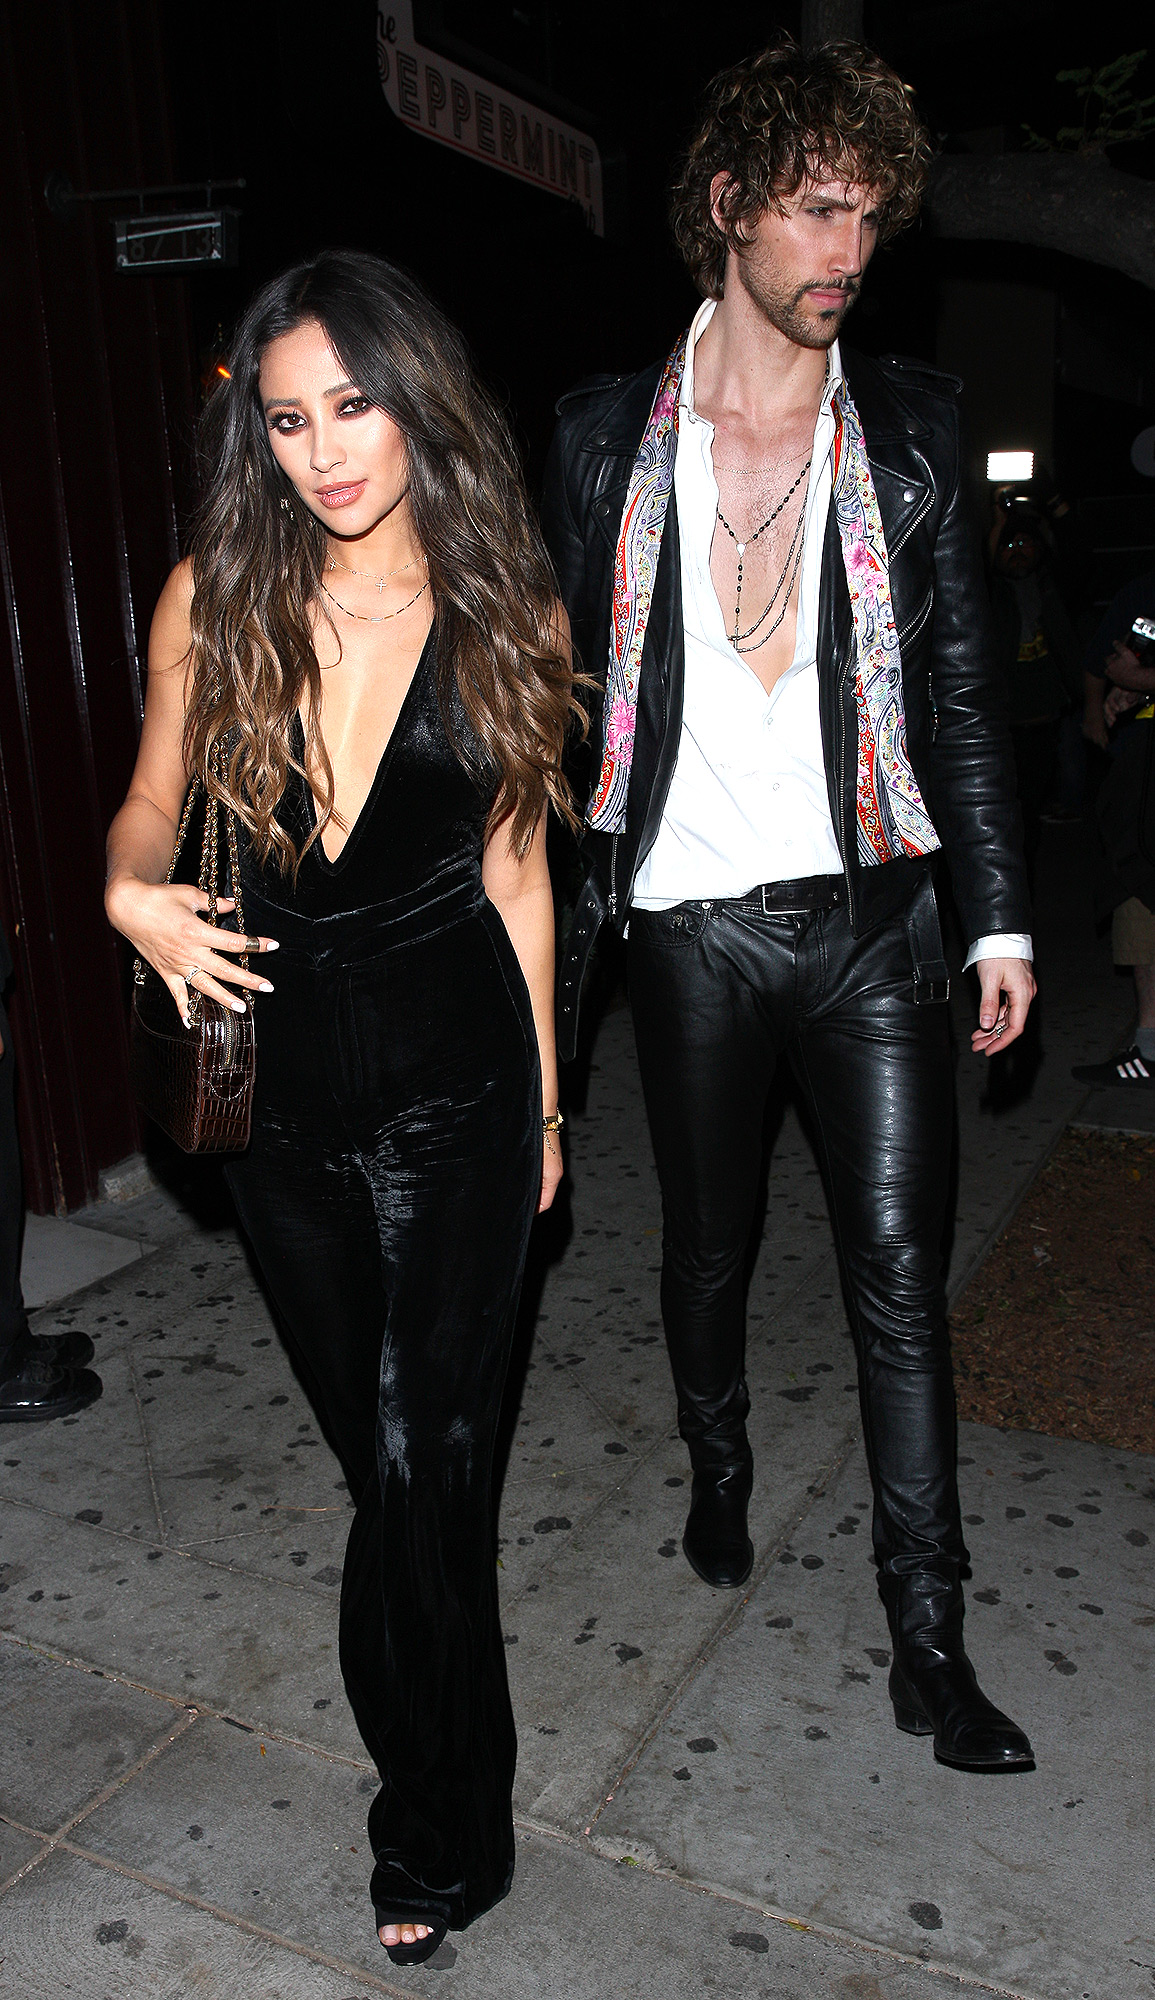 Shay Mitchell and a mystery man leave the Peppermint club after attending Jessica Alba's 36th birthday party